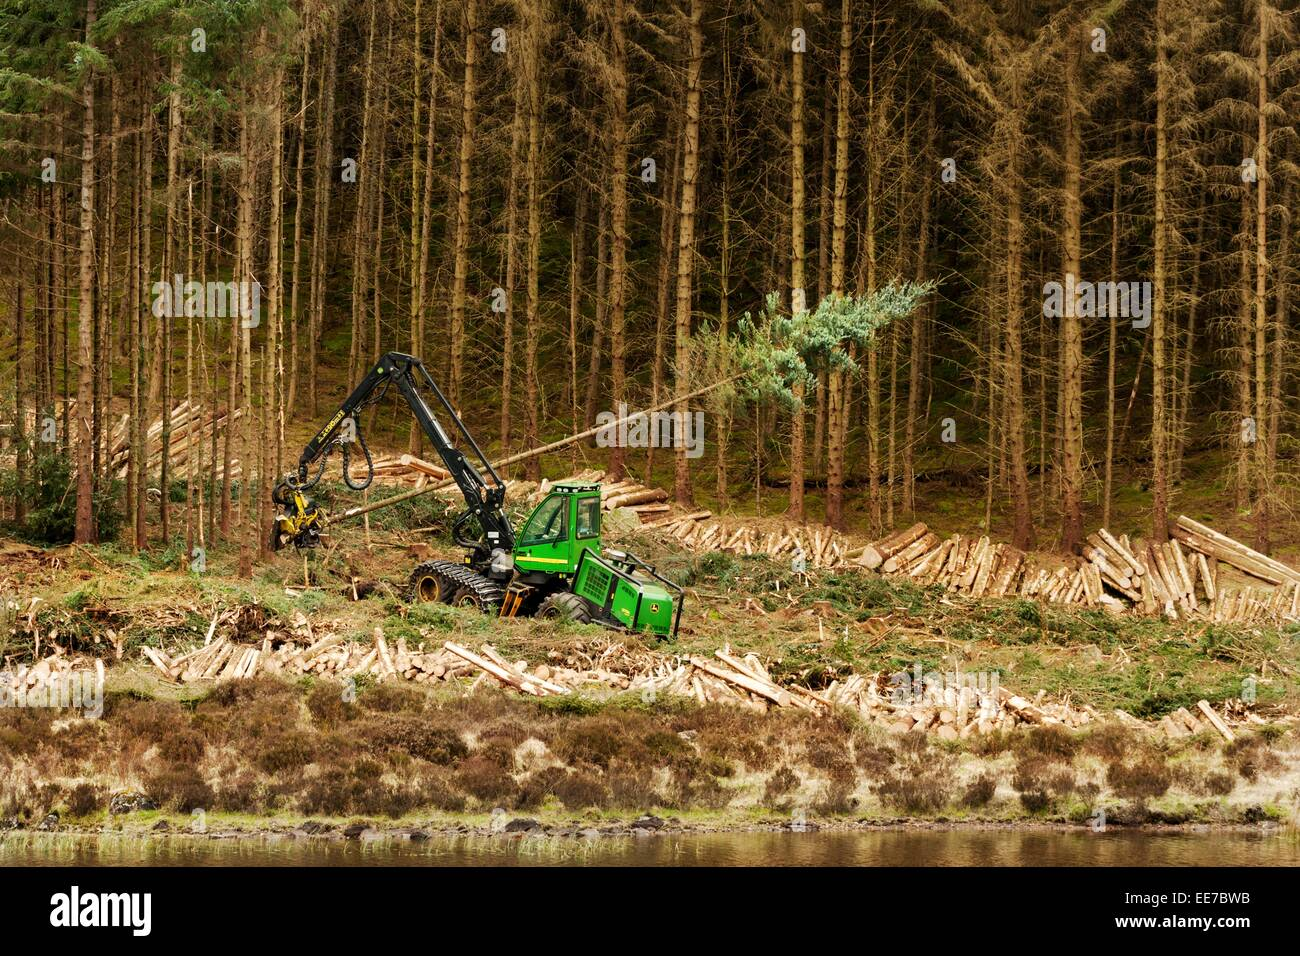 John Deere 1270d Harvester Felling Timber In A Forest In